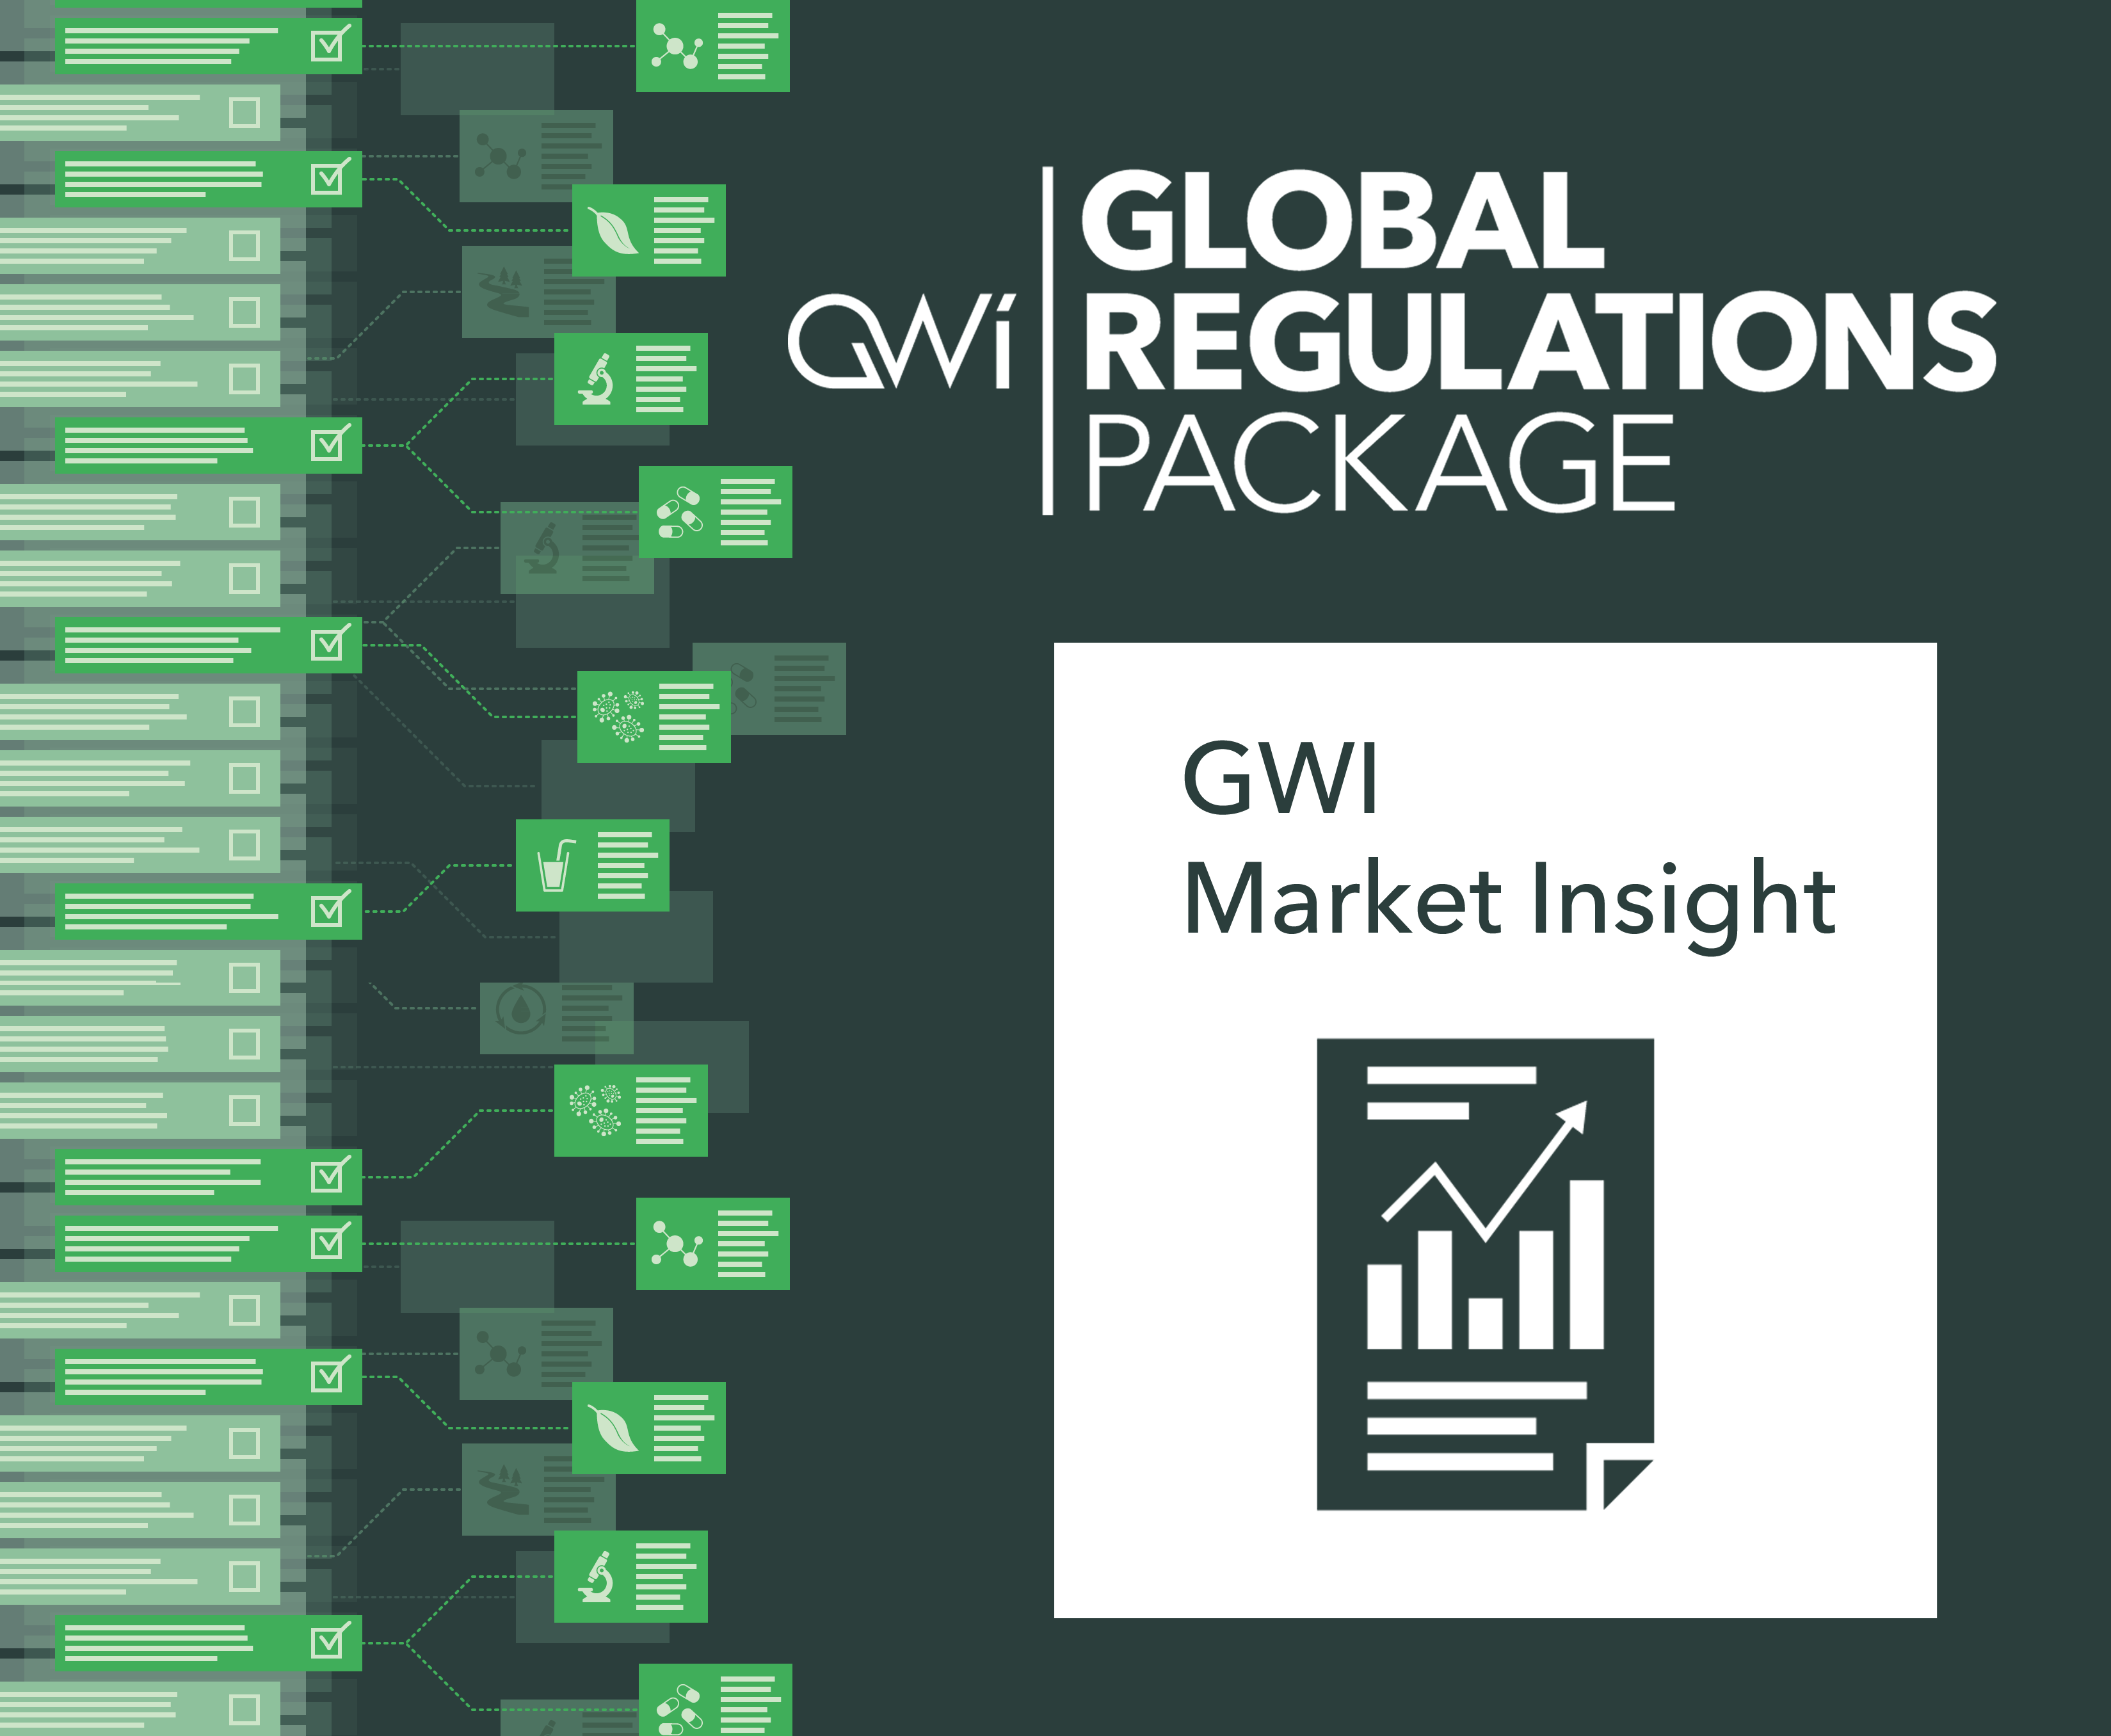 GWI Global Regulations Package: Market Insight